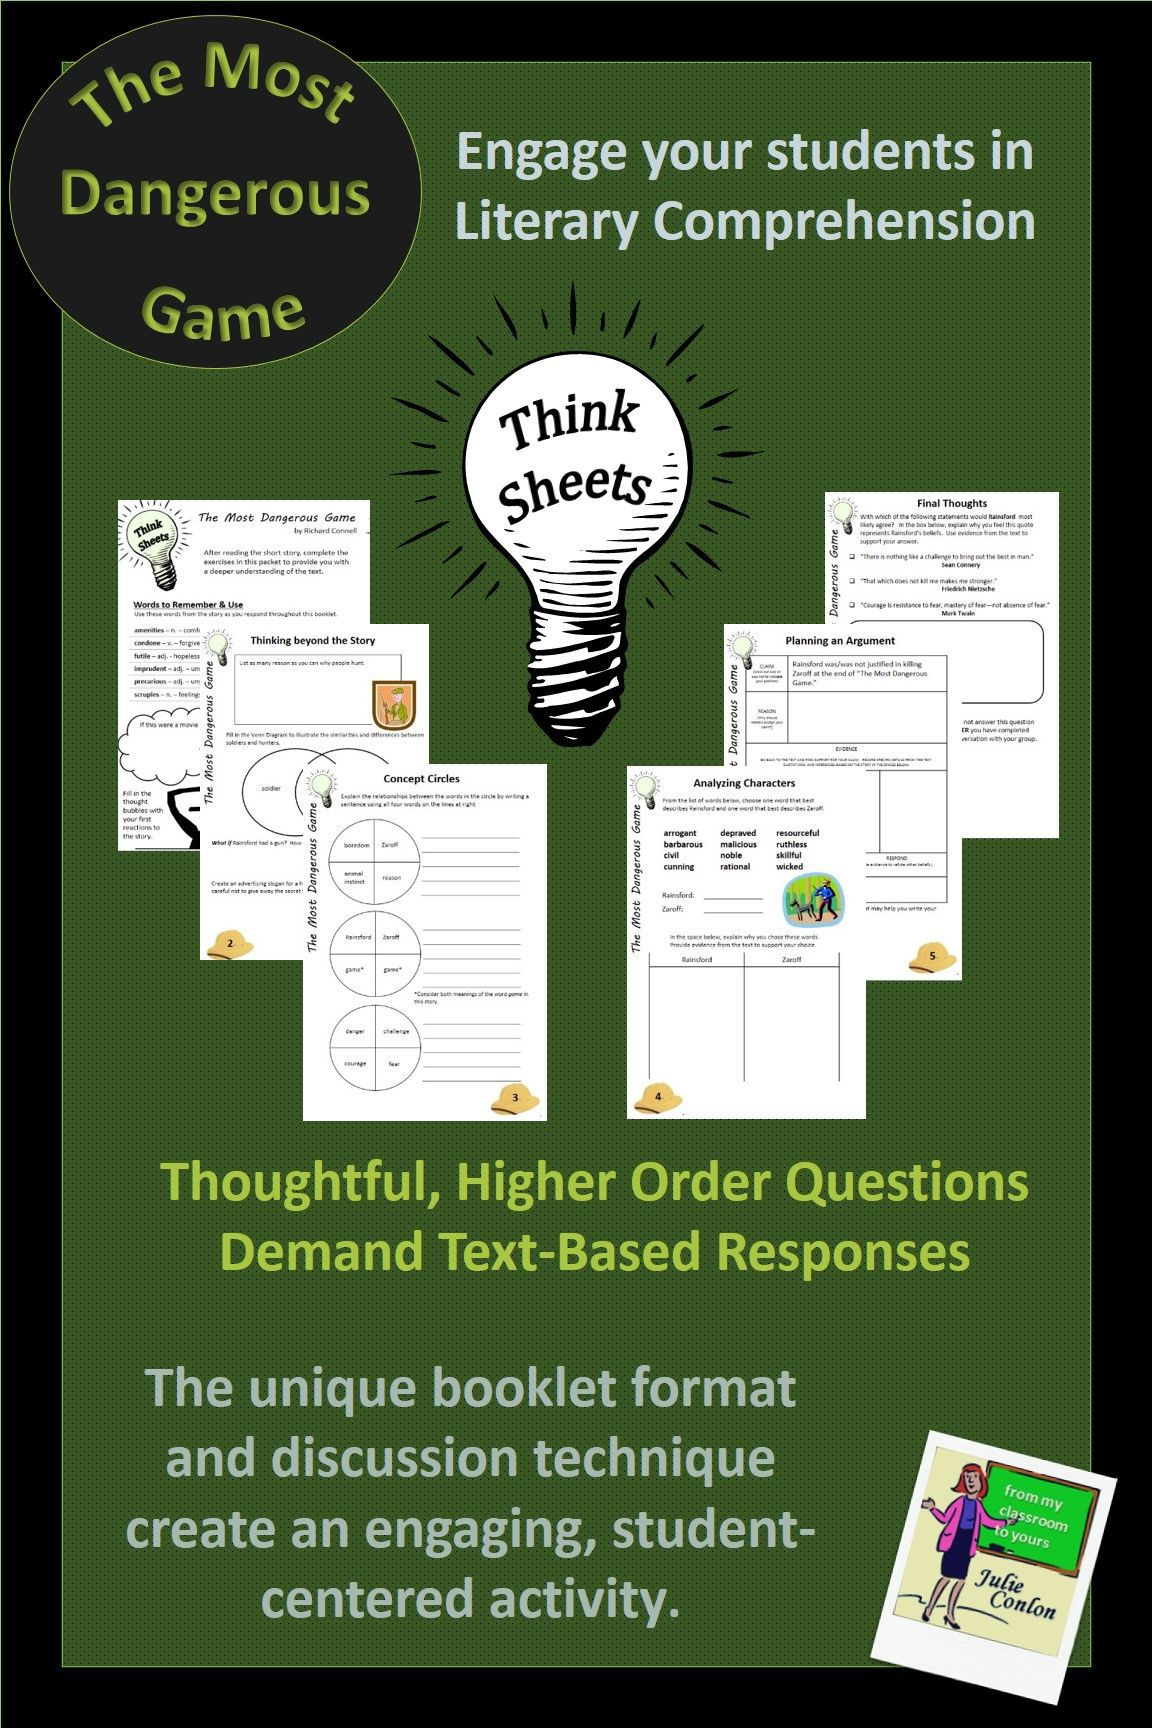 worksheet The Most Dangerous Game Comprehension Worksheet the most dangerous game think sheets reading response activity a creative and challenging assessment for by richard connell